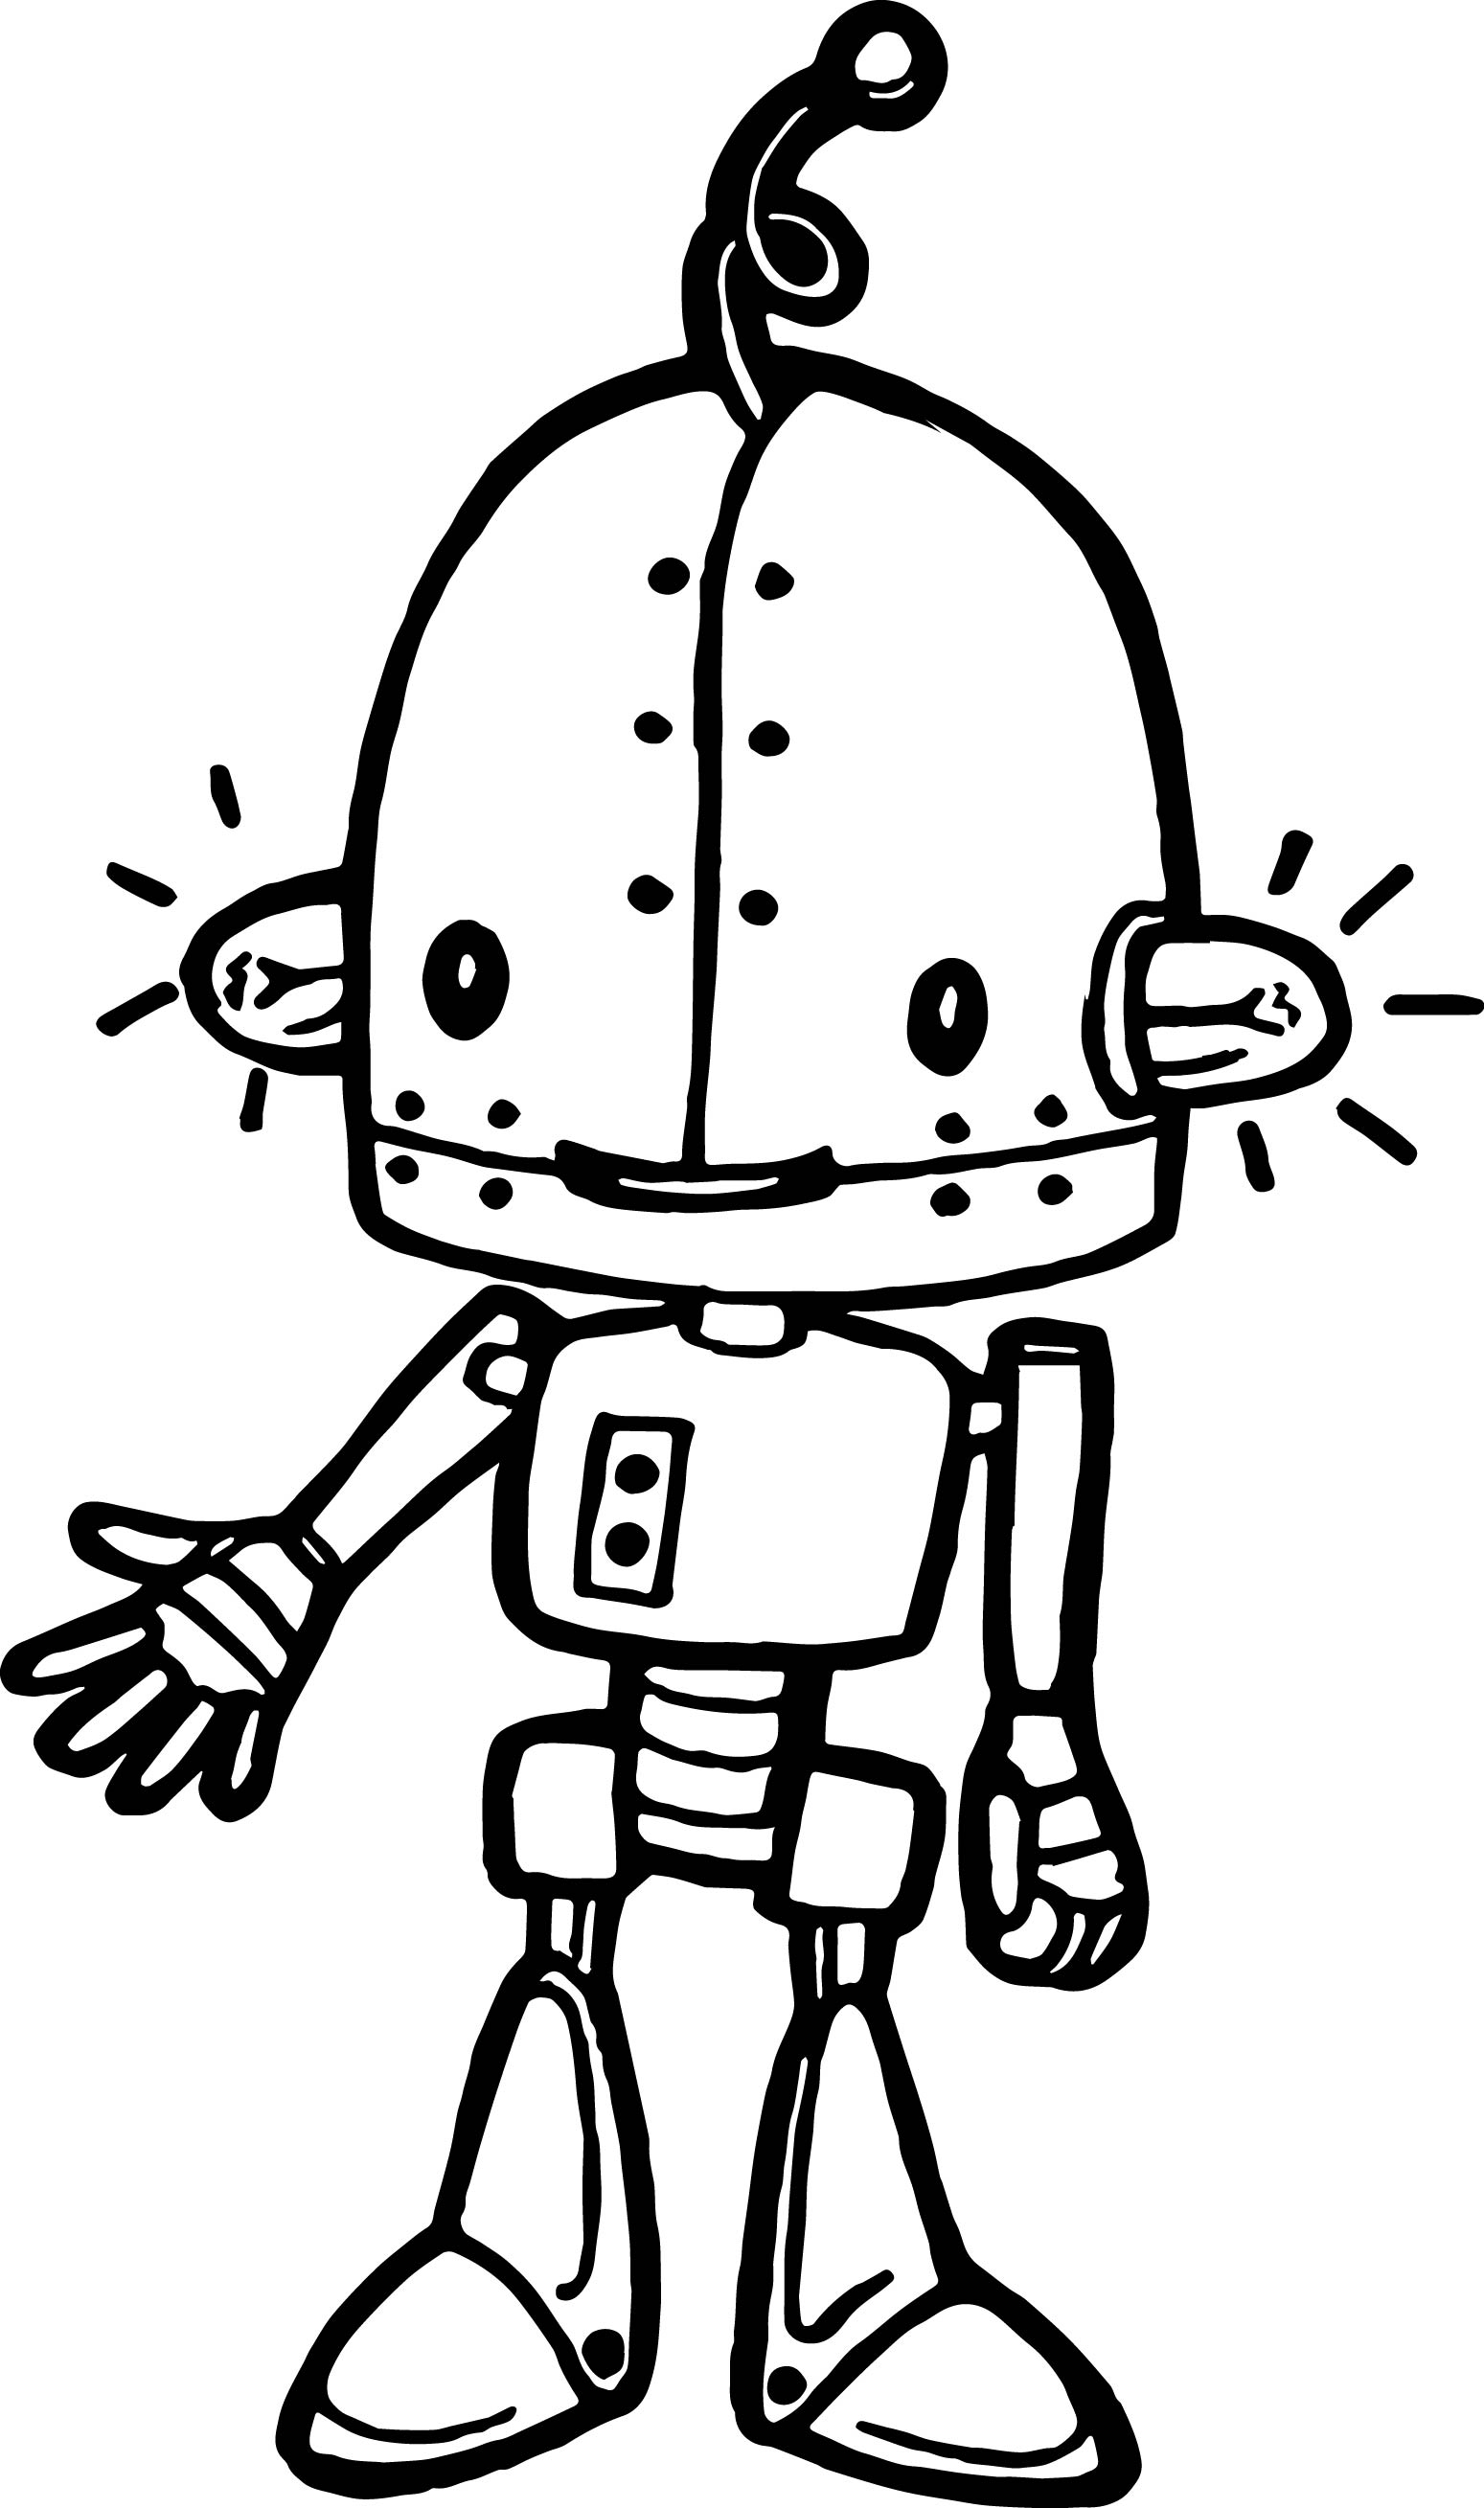 Coloring pictures robot - Ampule Cartoon Robot Coloring Page